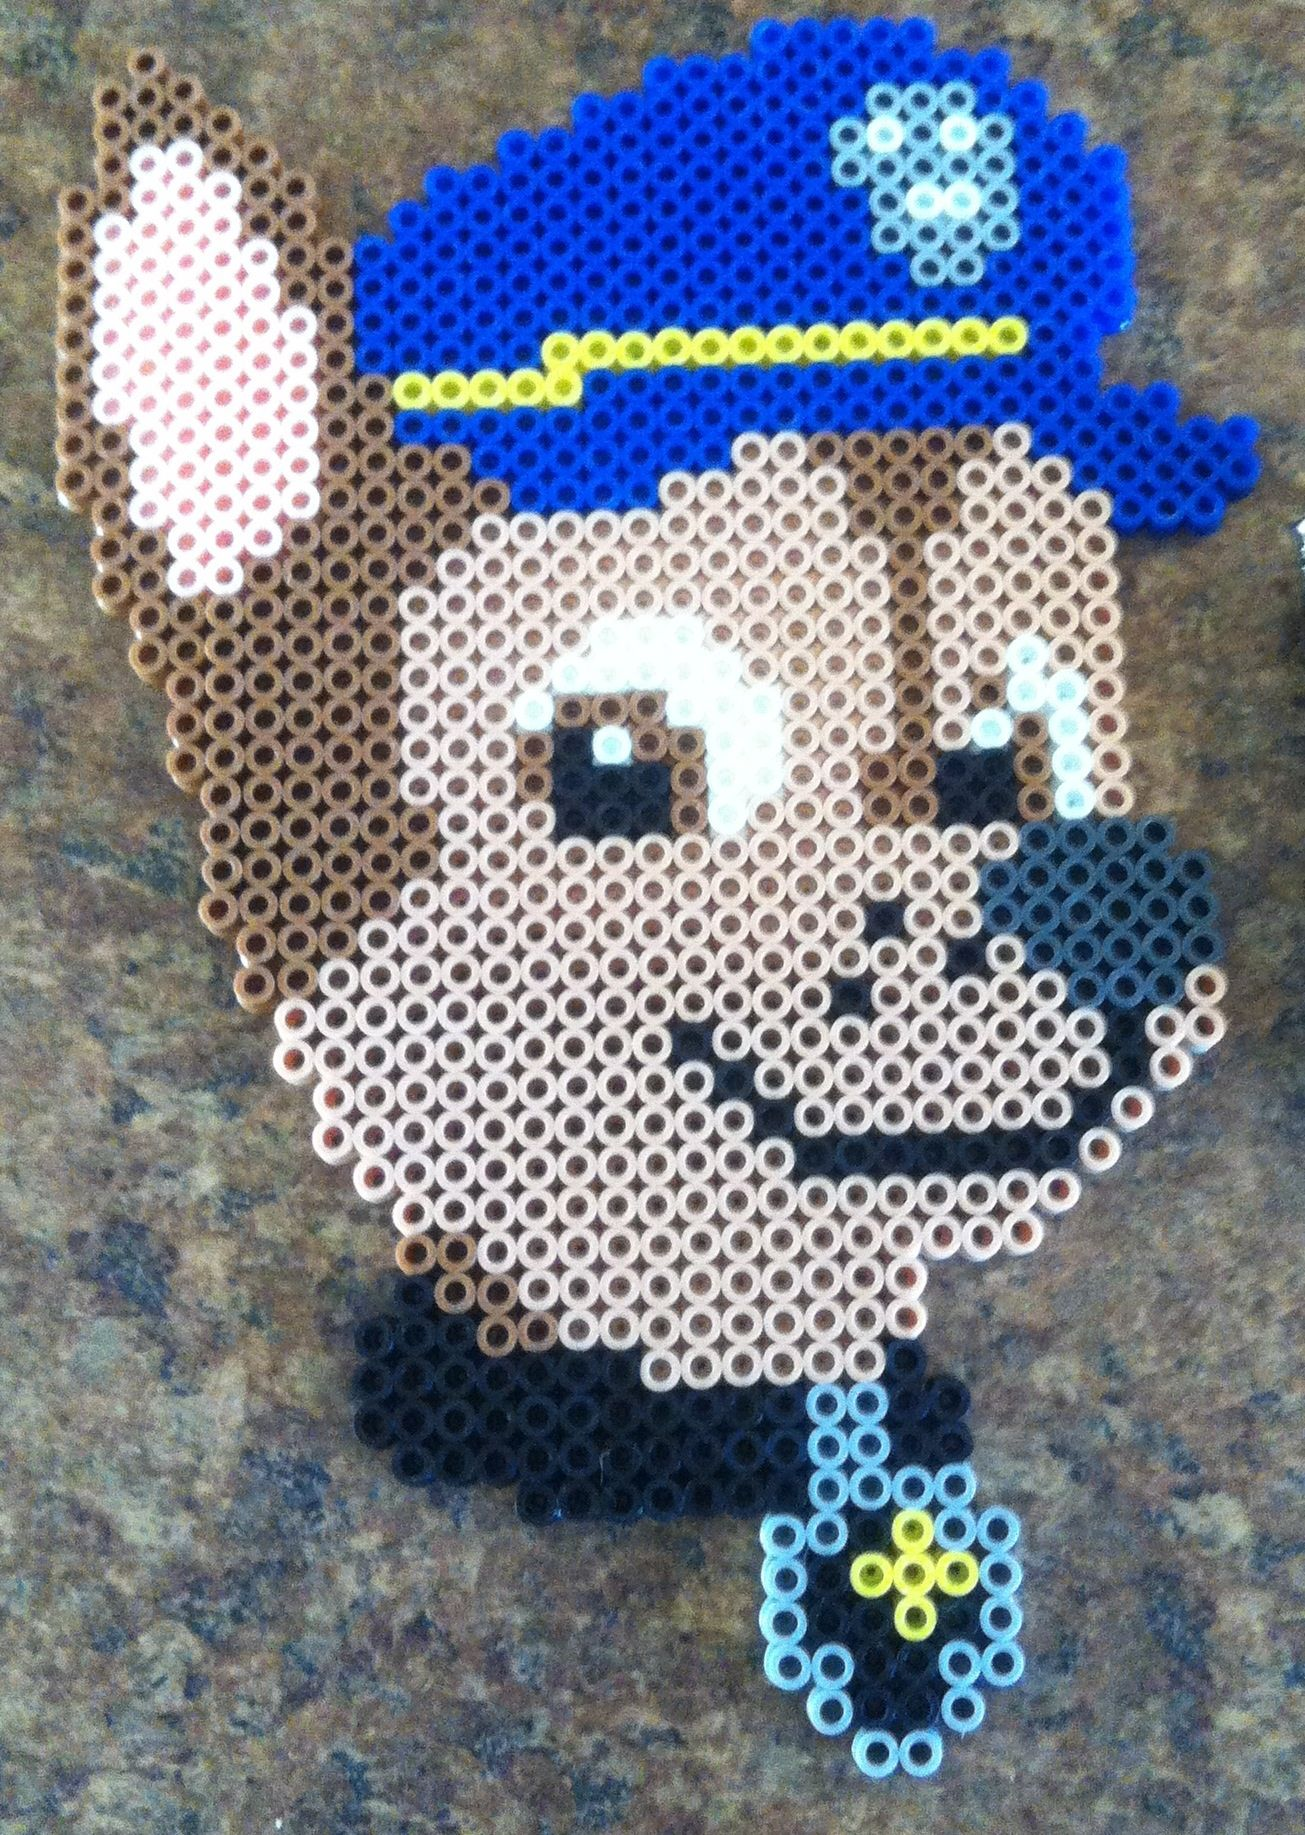 Pin by rose orologio on TY | Hama beads patterns, Perler ...